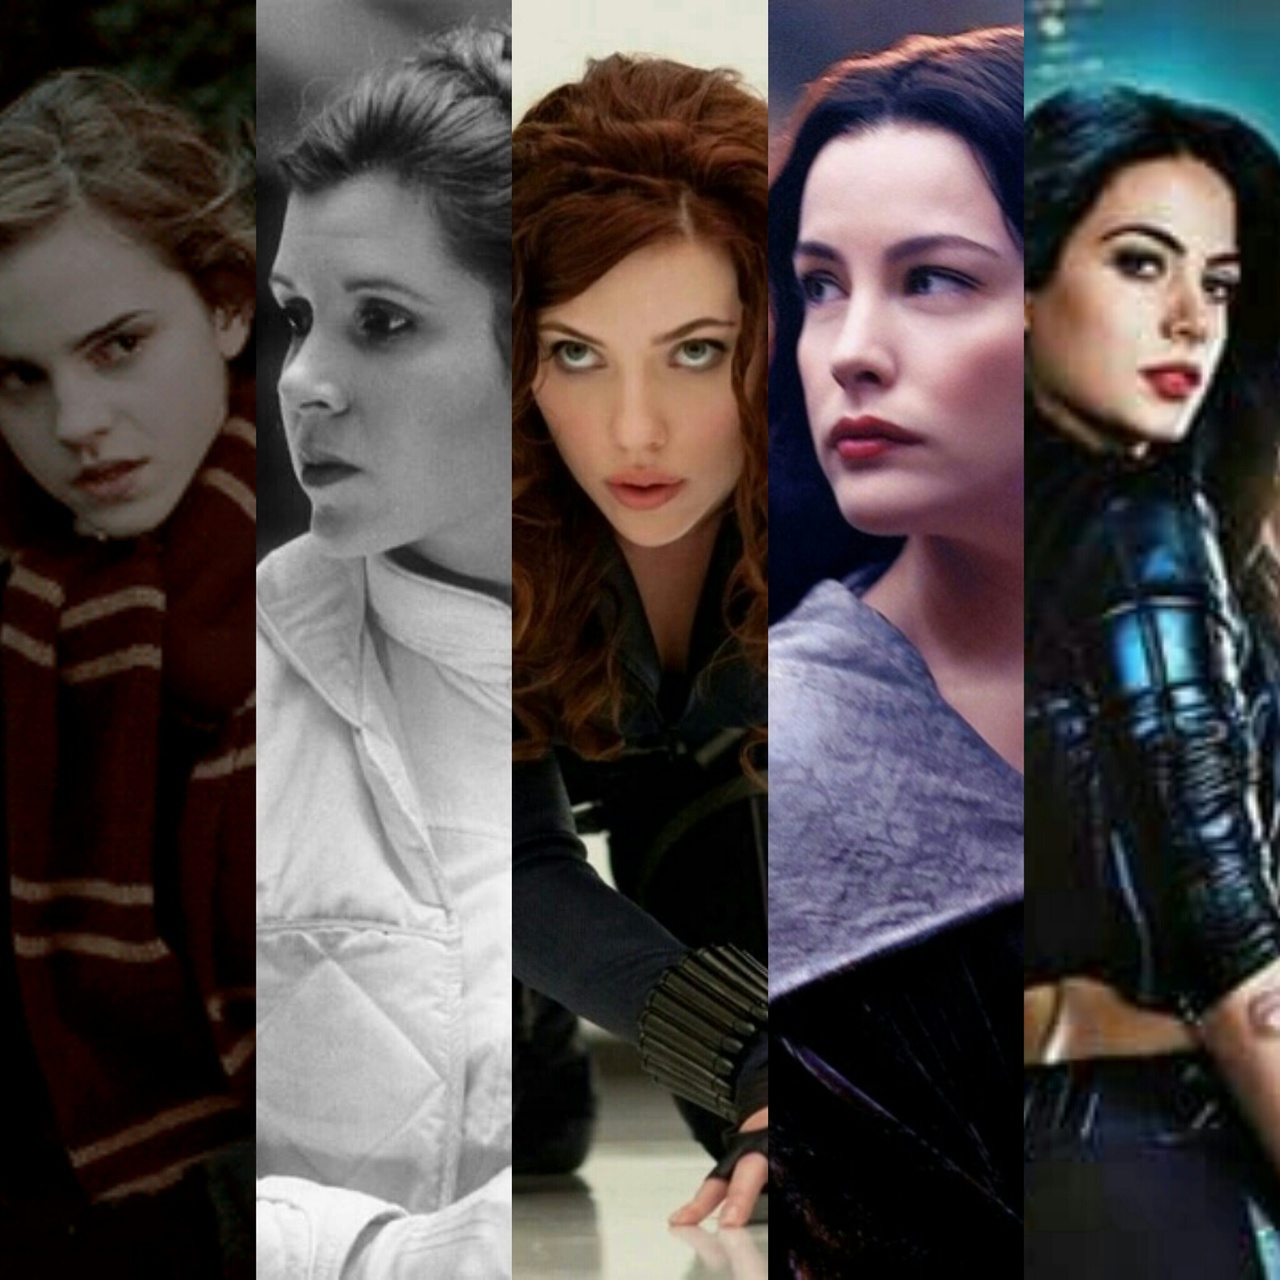 arwen, avengers, black, fandoms, girls, granger, harry potter, hermione, instruments, isabelle, leia, marvel, natasha, skywalker, star wars, the, the lord of the rings, tolkien, widow, shadowhunter, lightwood, mortal, romanoff